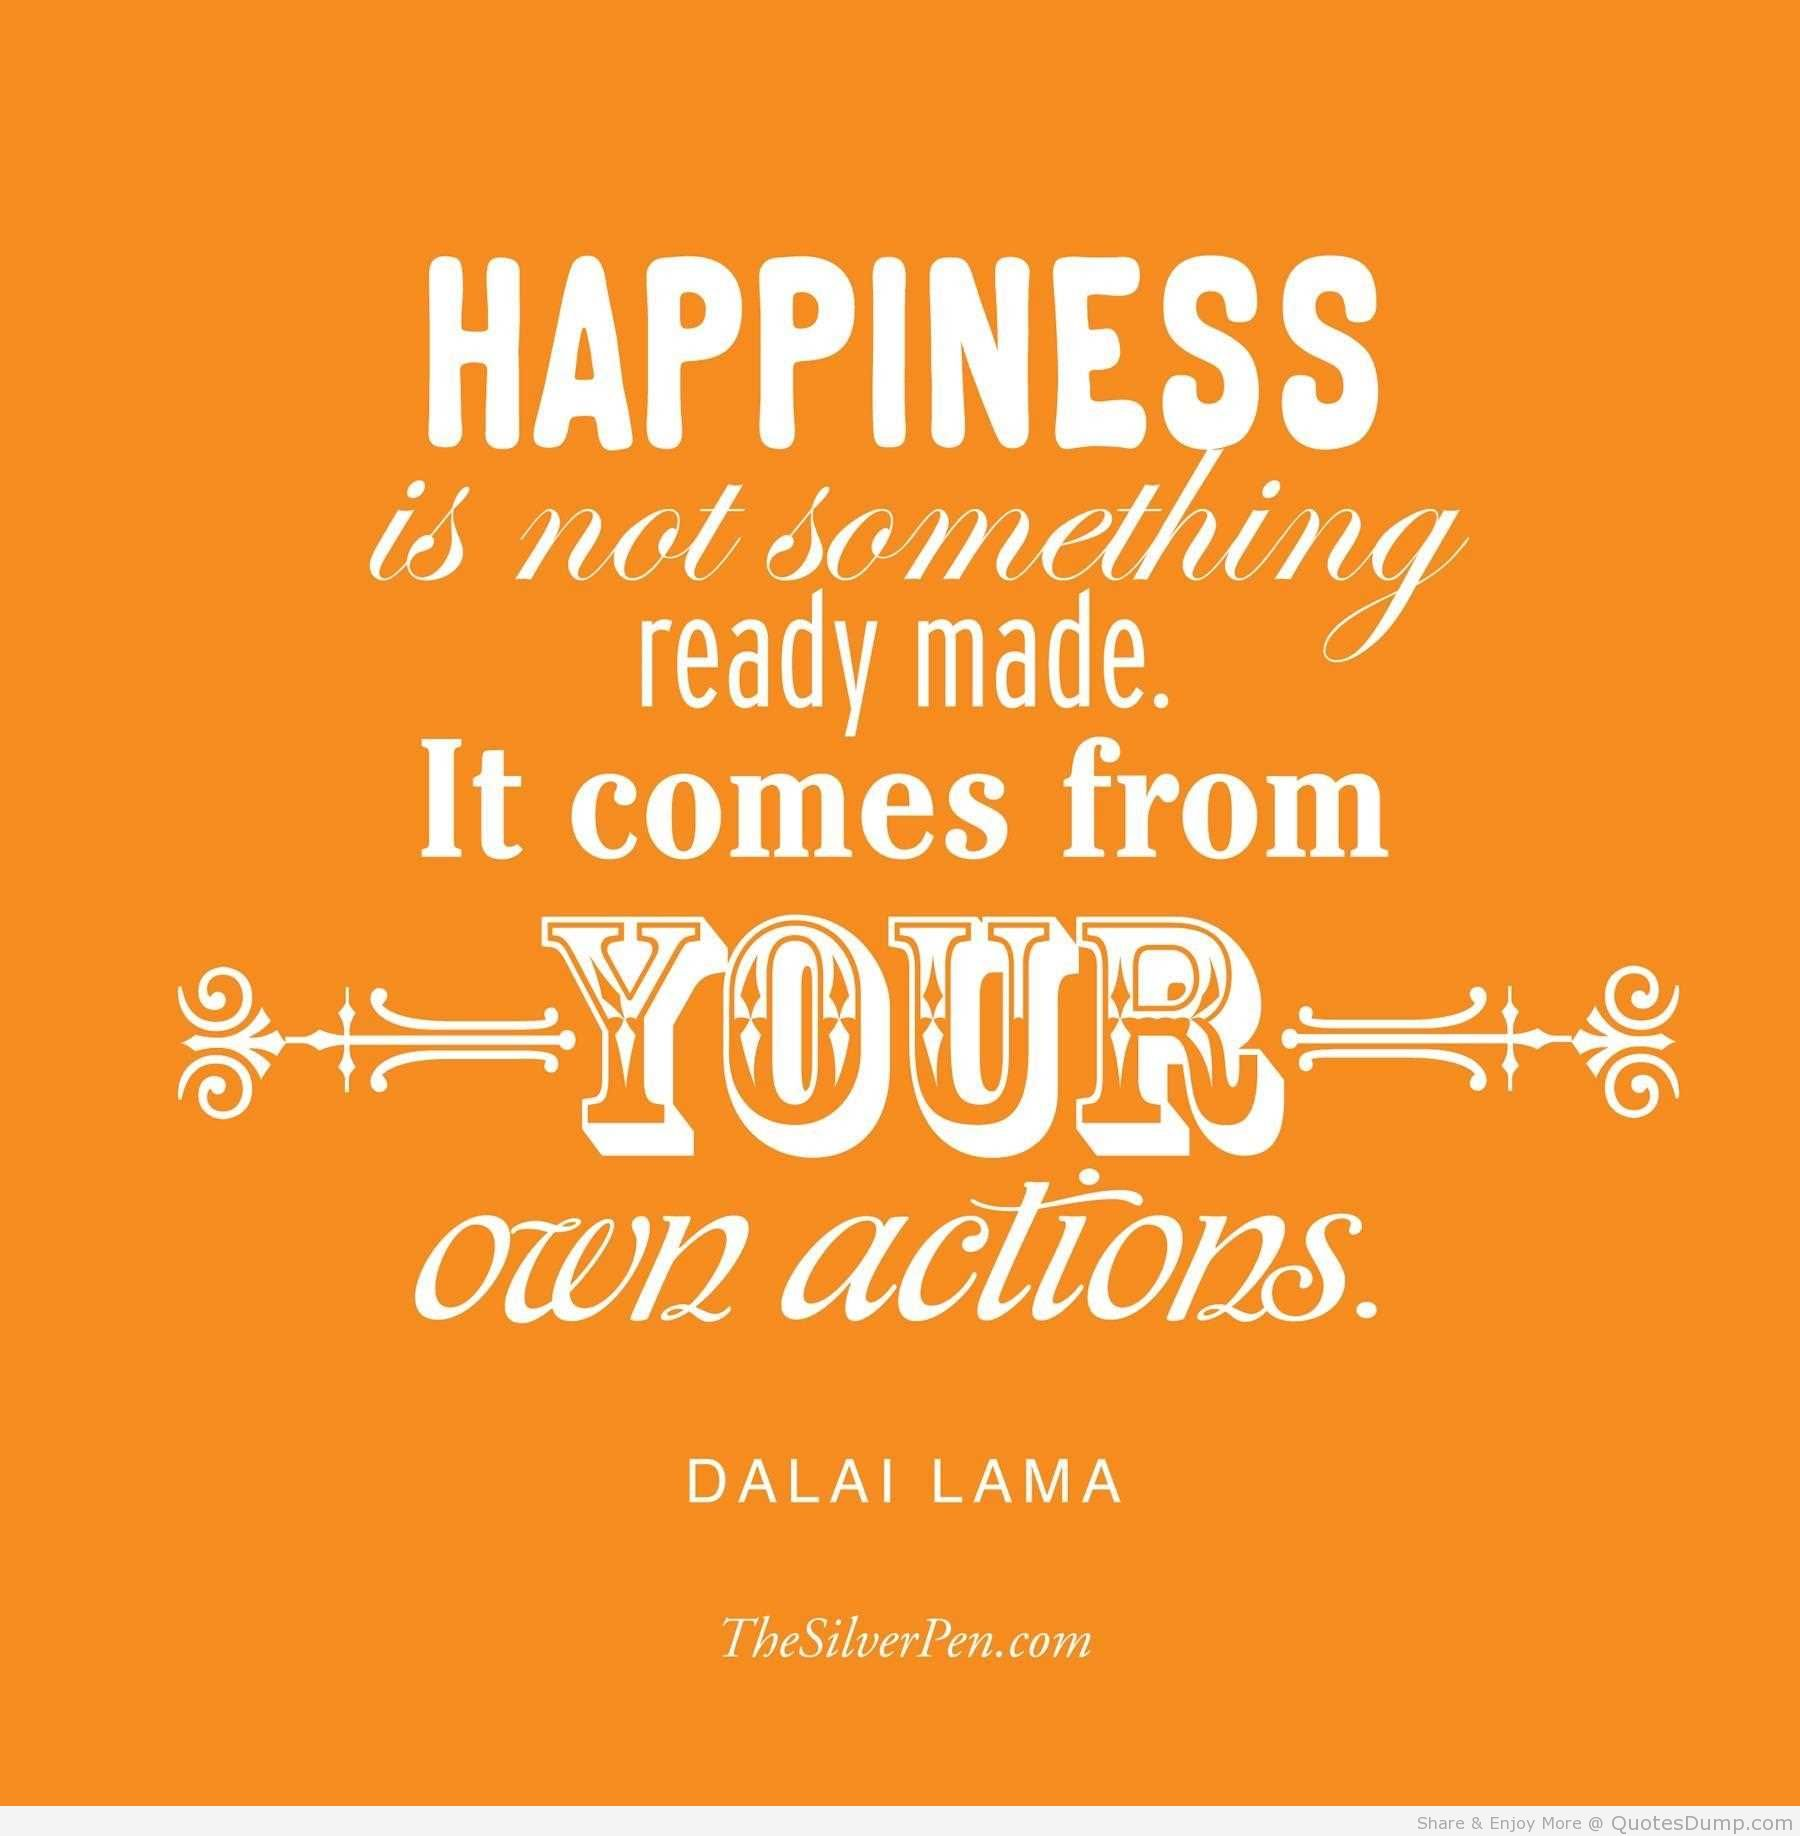 Quotes About Love And Happiness: Facebook Quotes About Life And Happiness. QuotesGram